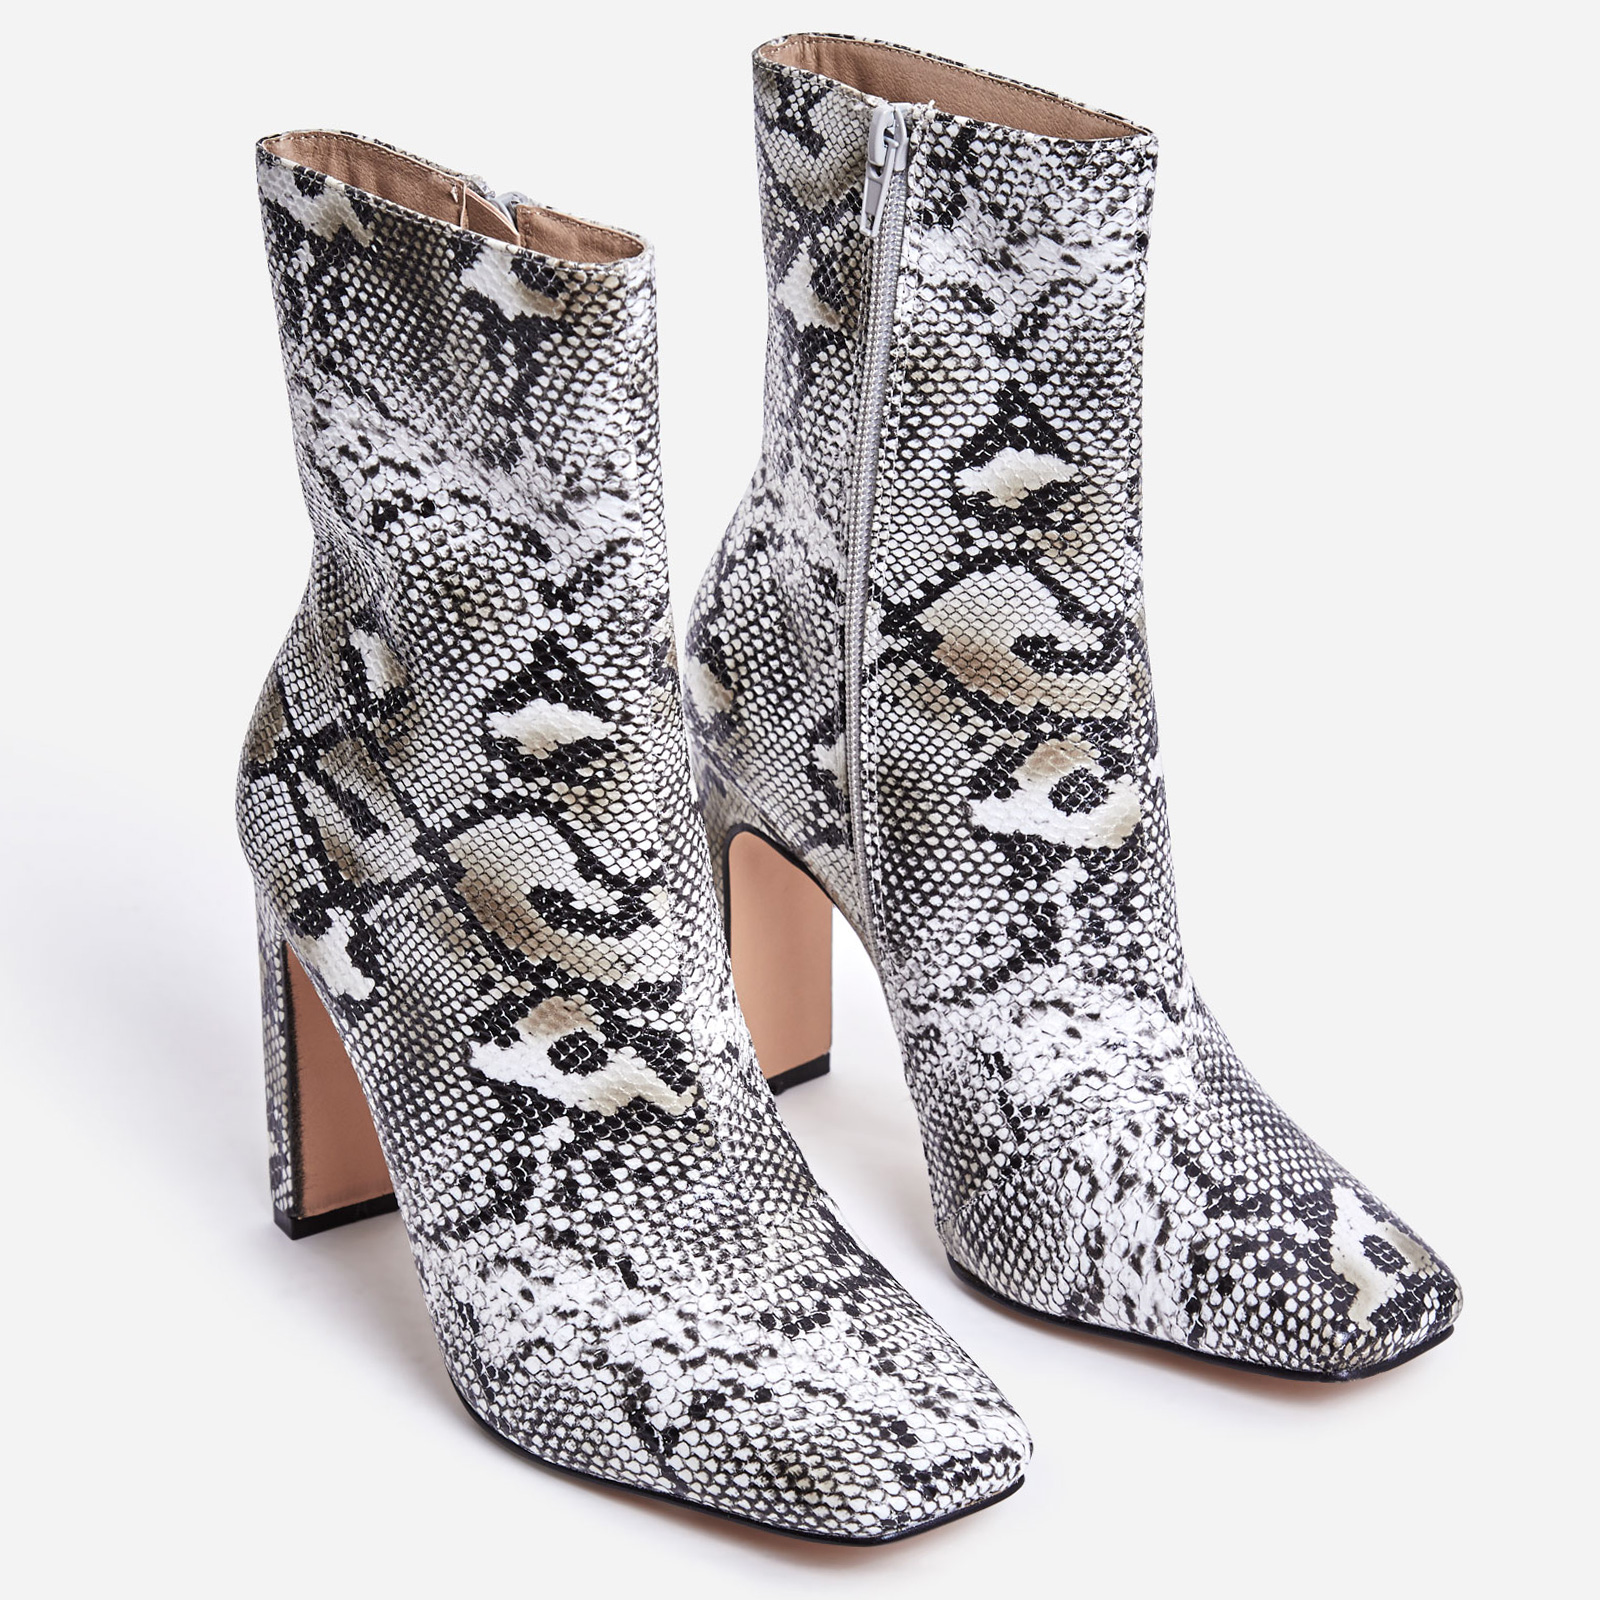 Klass Square Toe Thin Block Heel Ankle Boot In Nude Snake Print Faux Leather